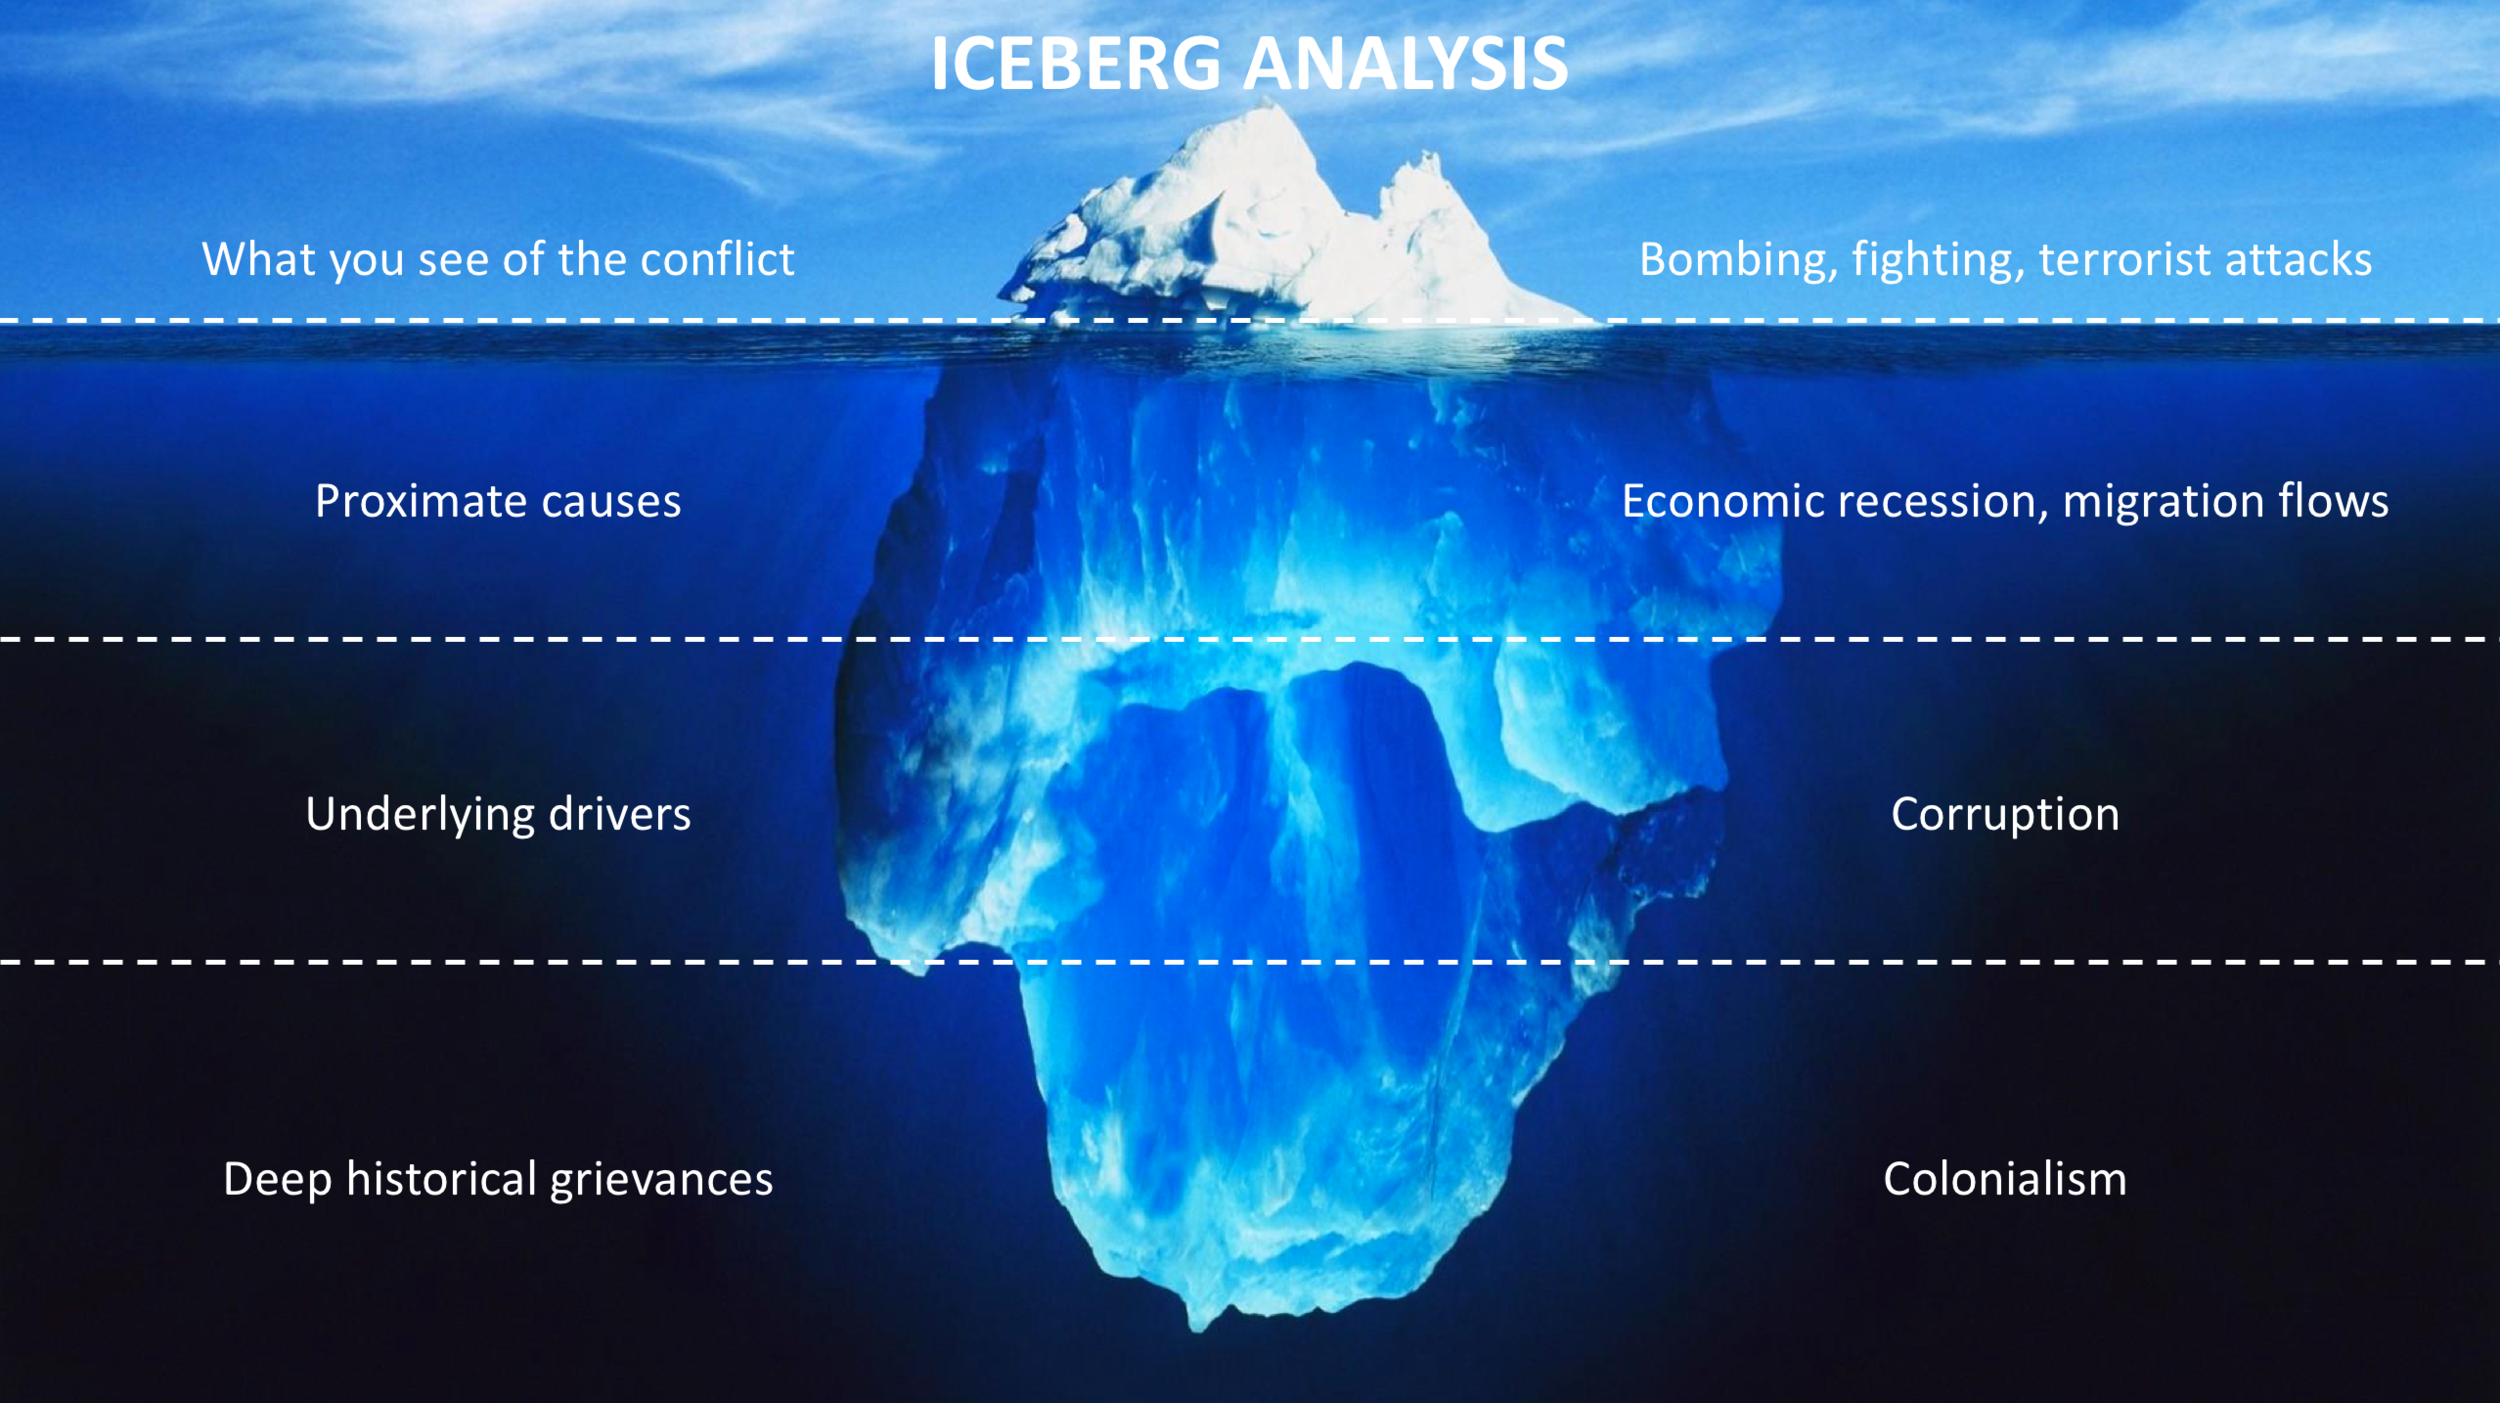 Group Think Iceberg analysis.png